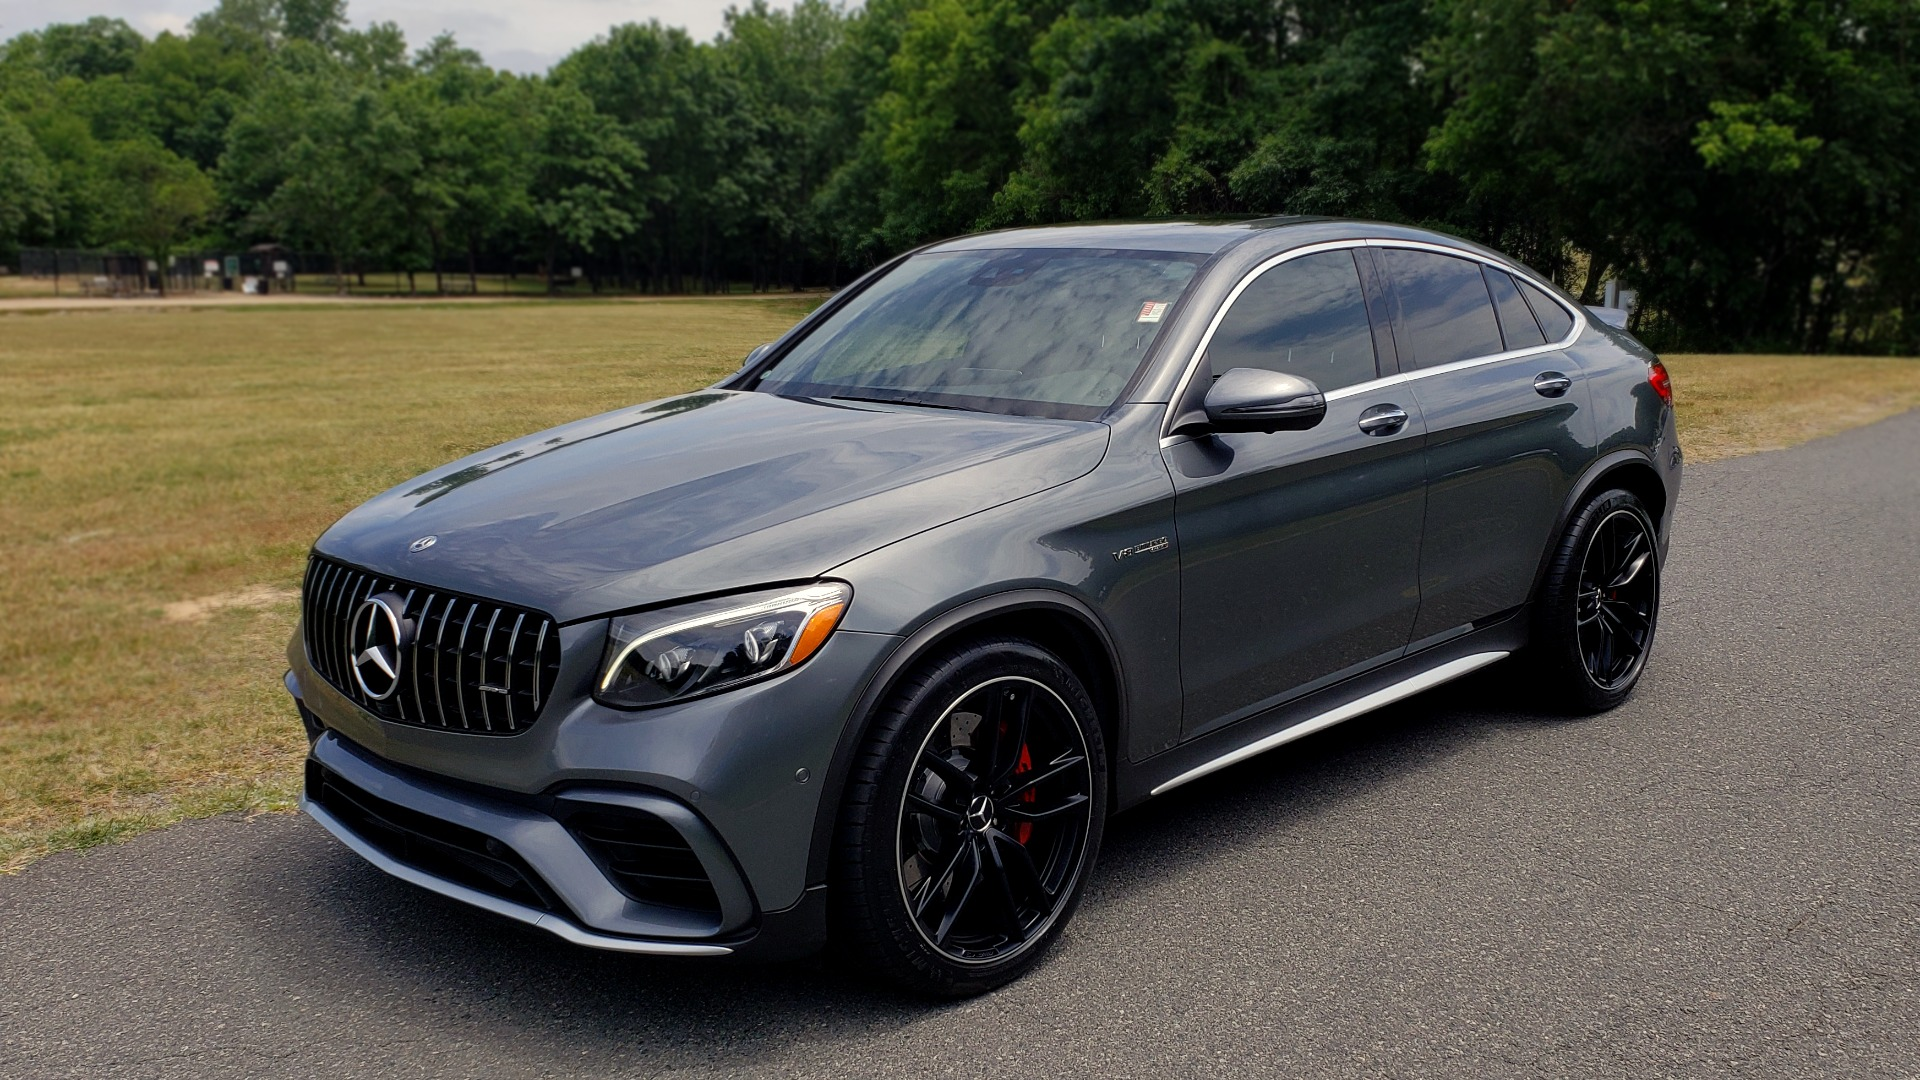 Used 2019 Mercedes-Benz GLC AMG 63 S 4MATIC COUPE / NAV / TRACK PACE APP / AMG PERF EXH / MULTIMEDIA for sale Sold at Formula Imports in Charlotte NC 28227 1